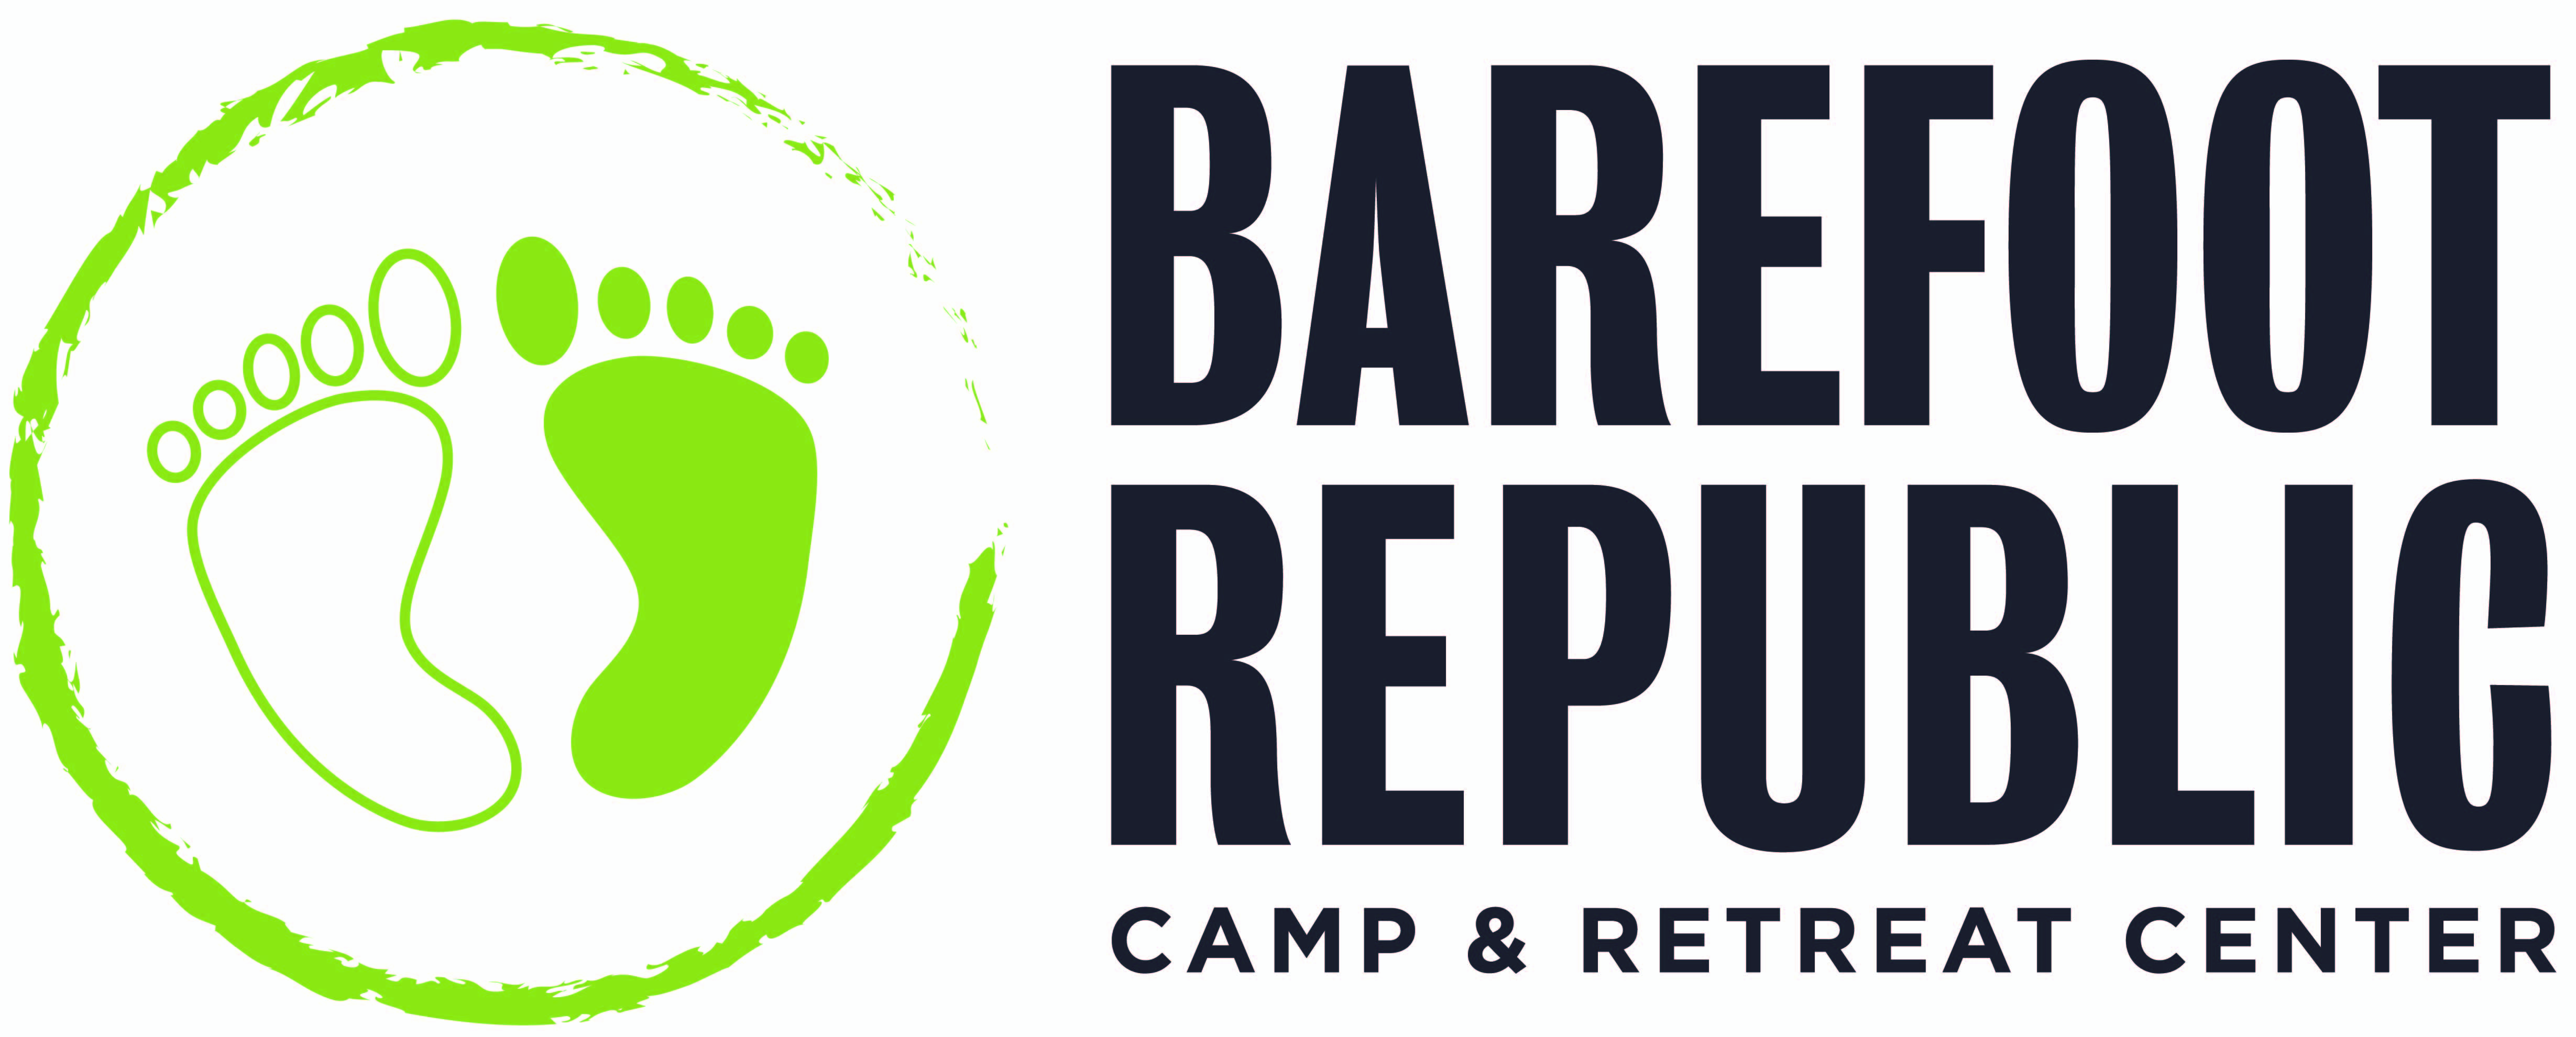 Barefoot Republic Camps